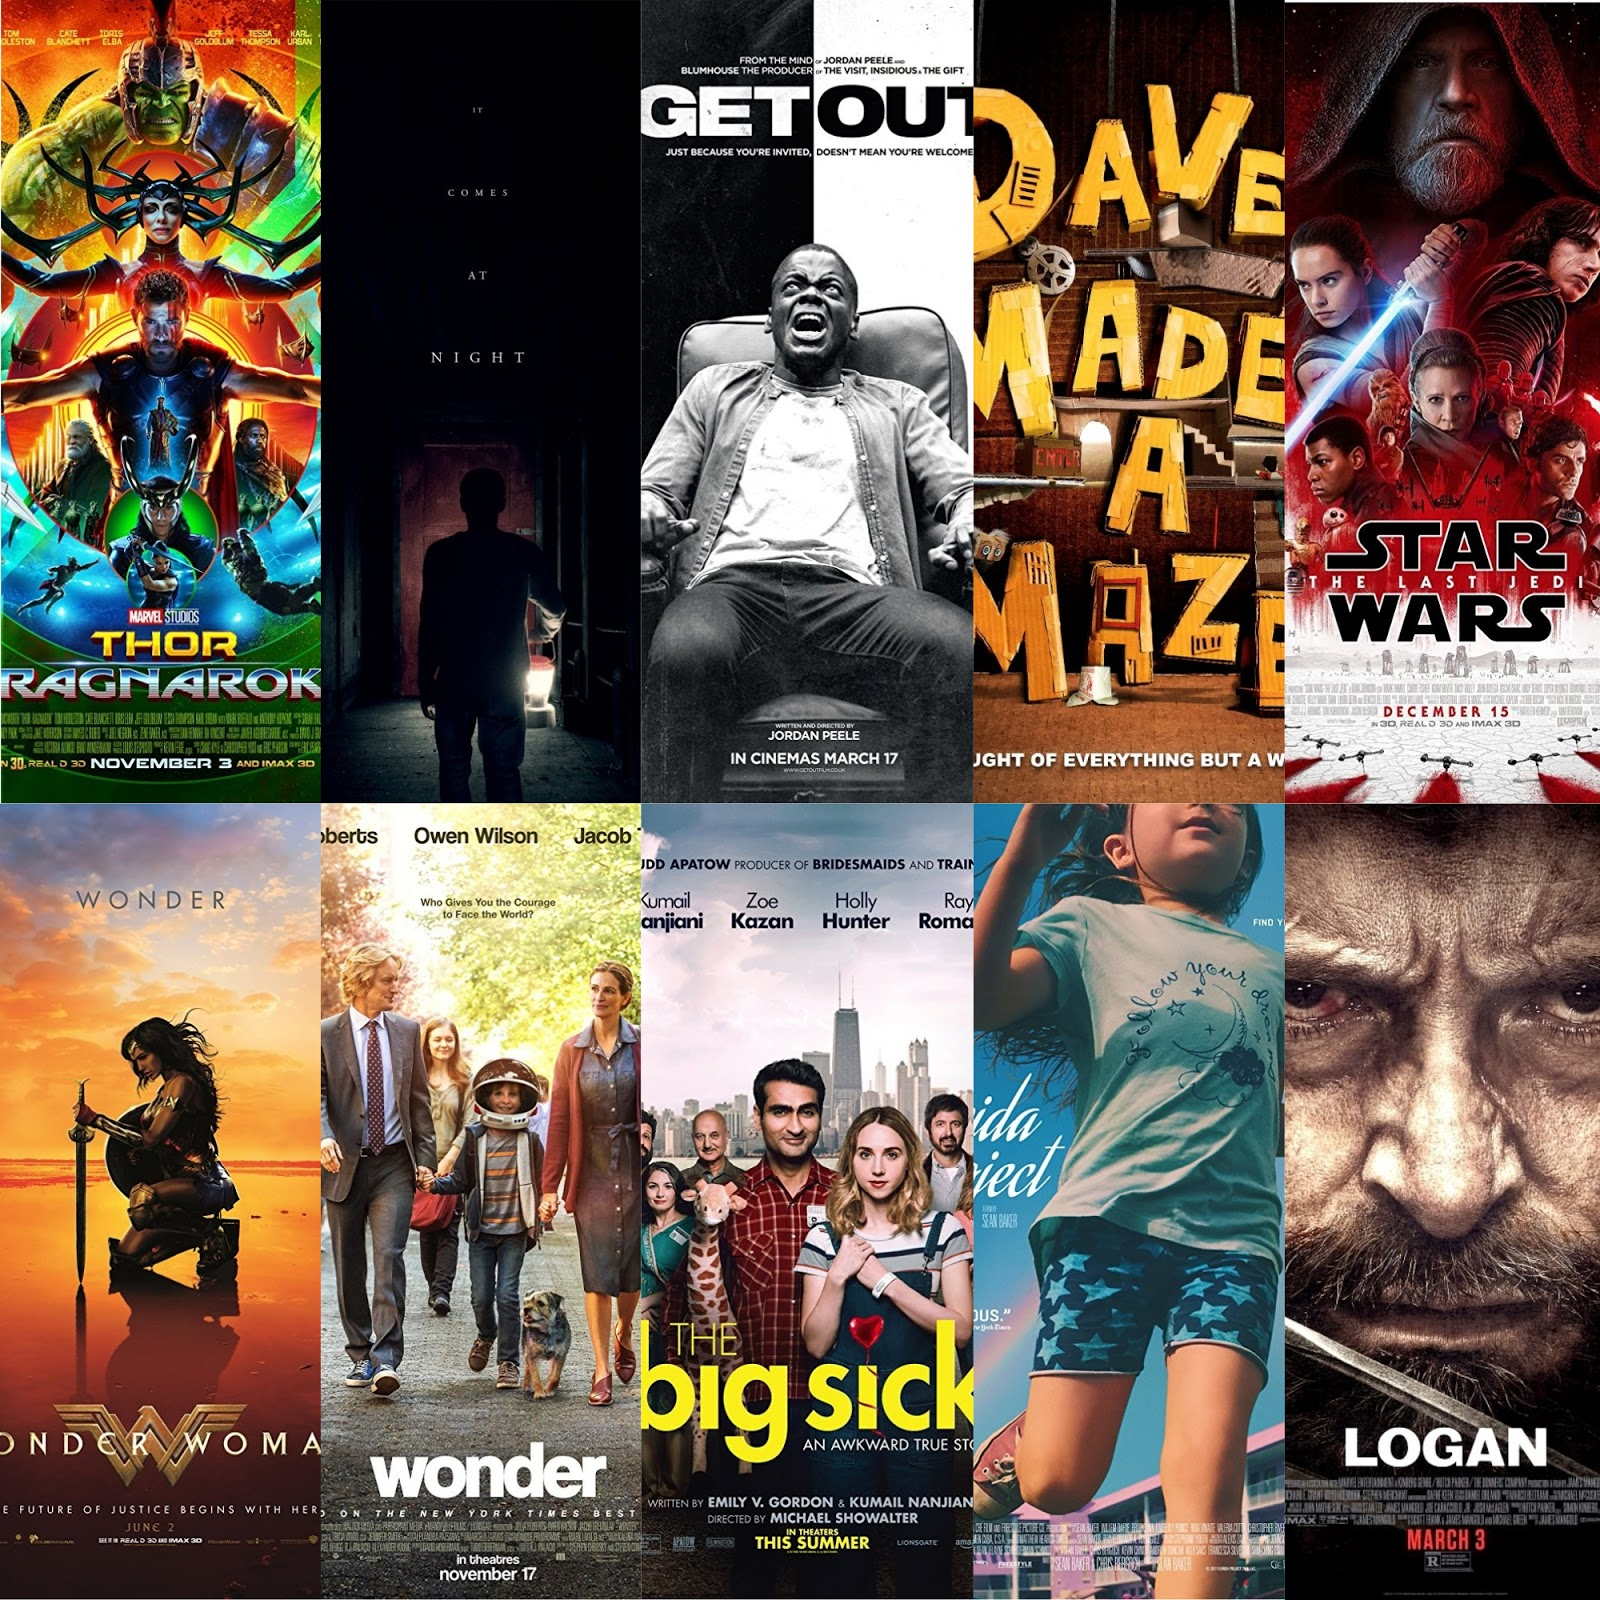 Film Reviewer Jr : 2017 in Review: Interracial Relationships, Child